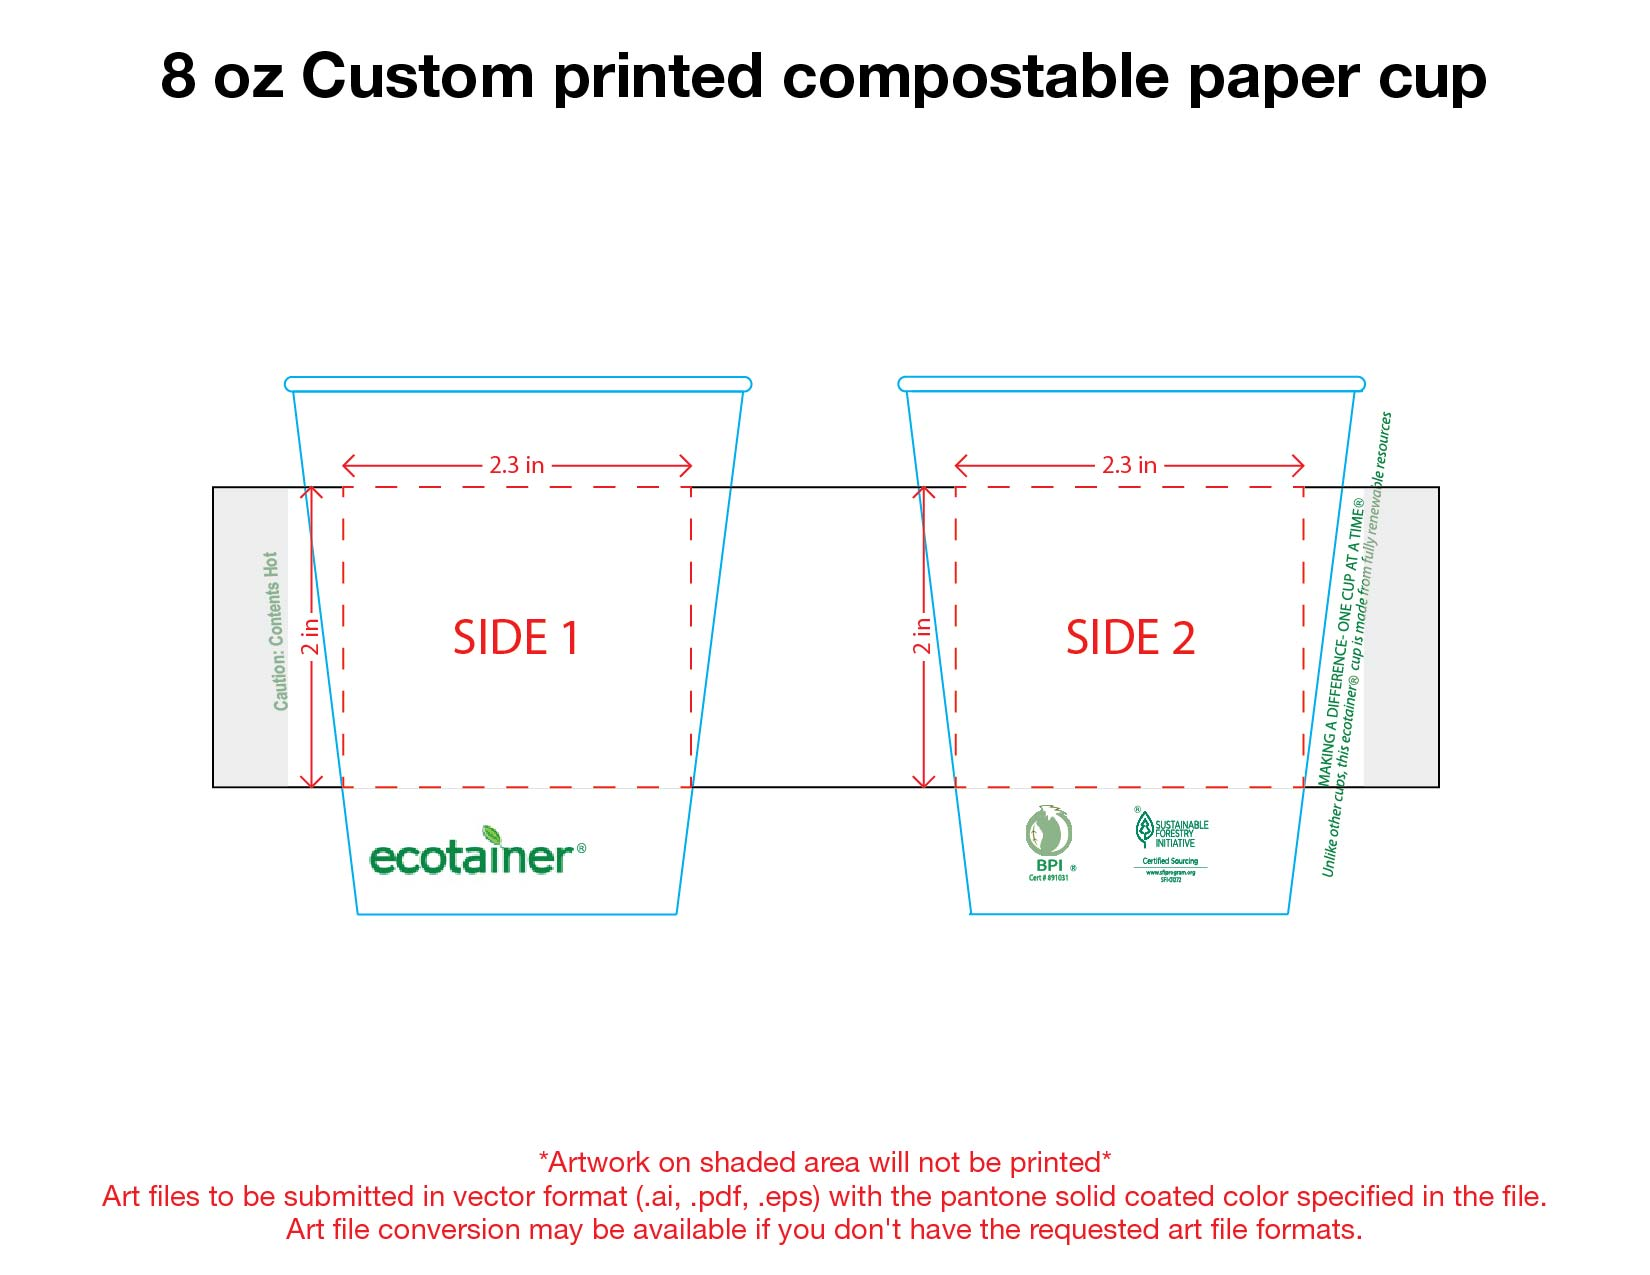 8 oz. Custom Printed Compostable Paper